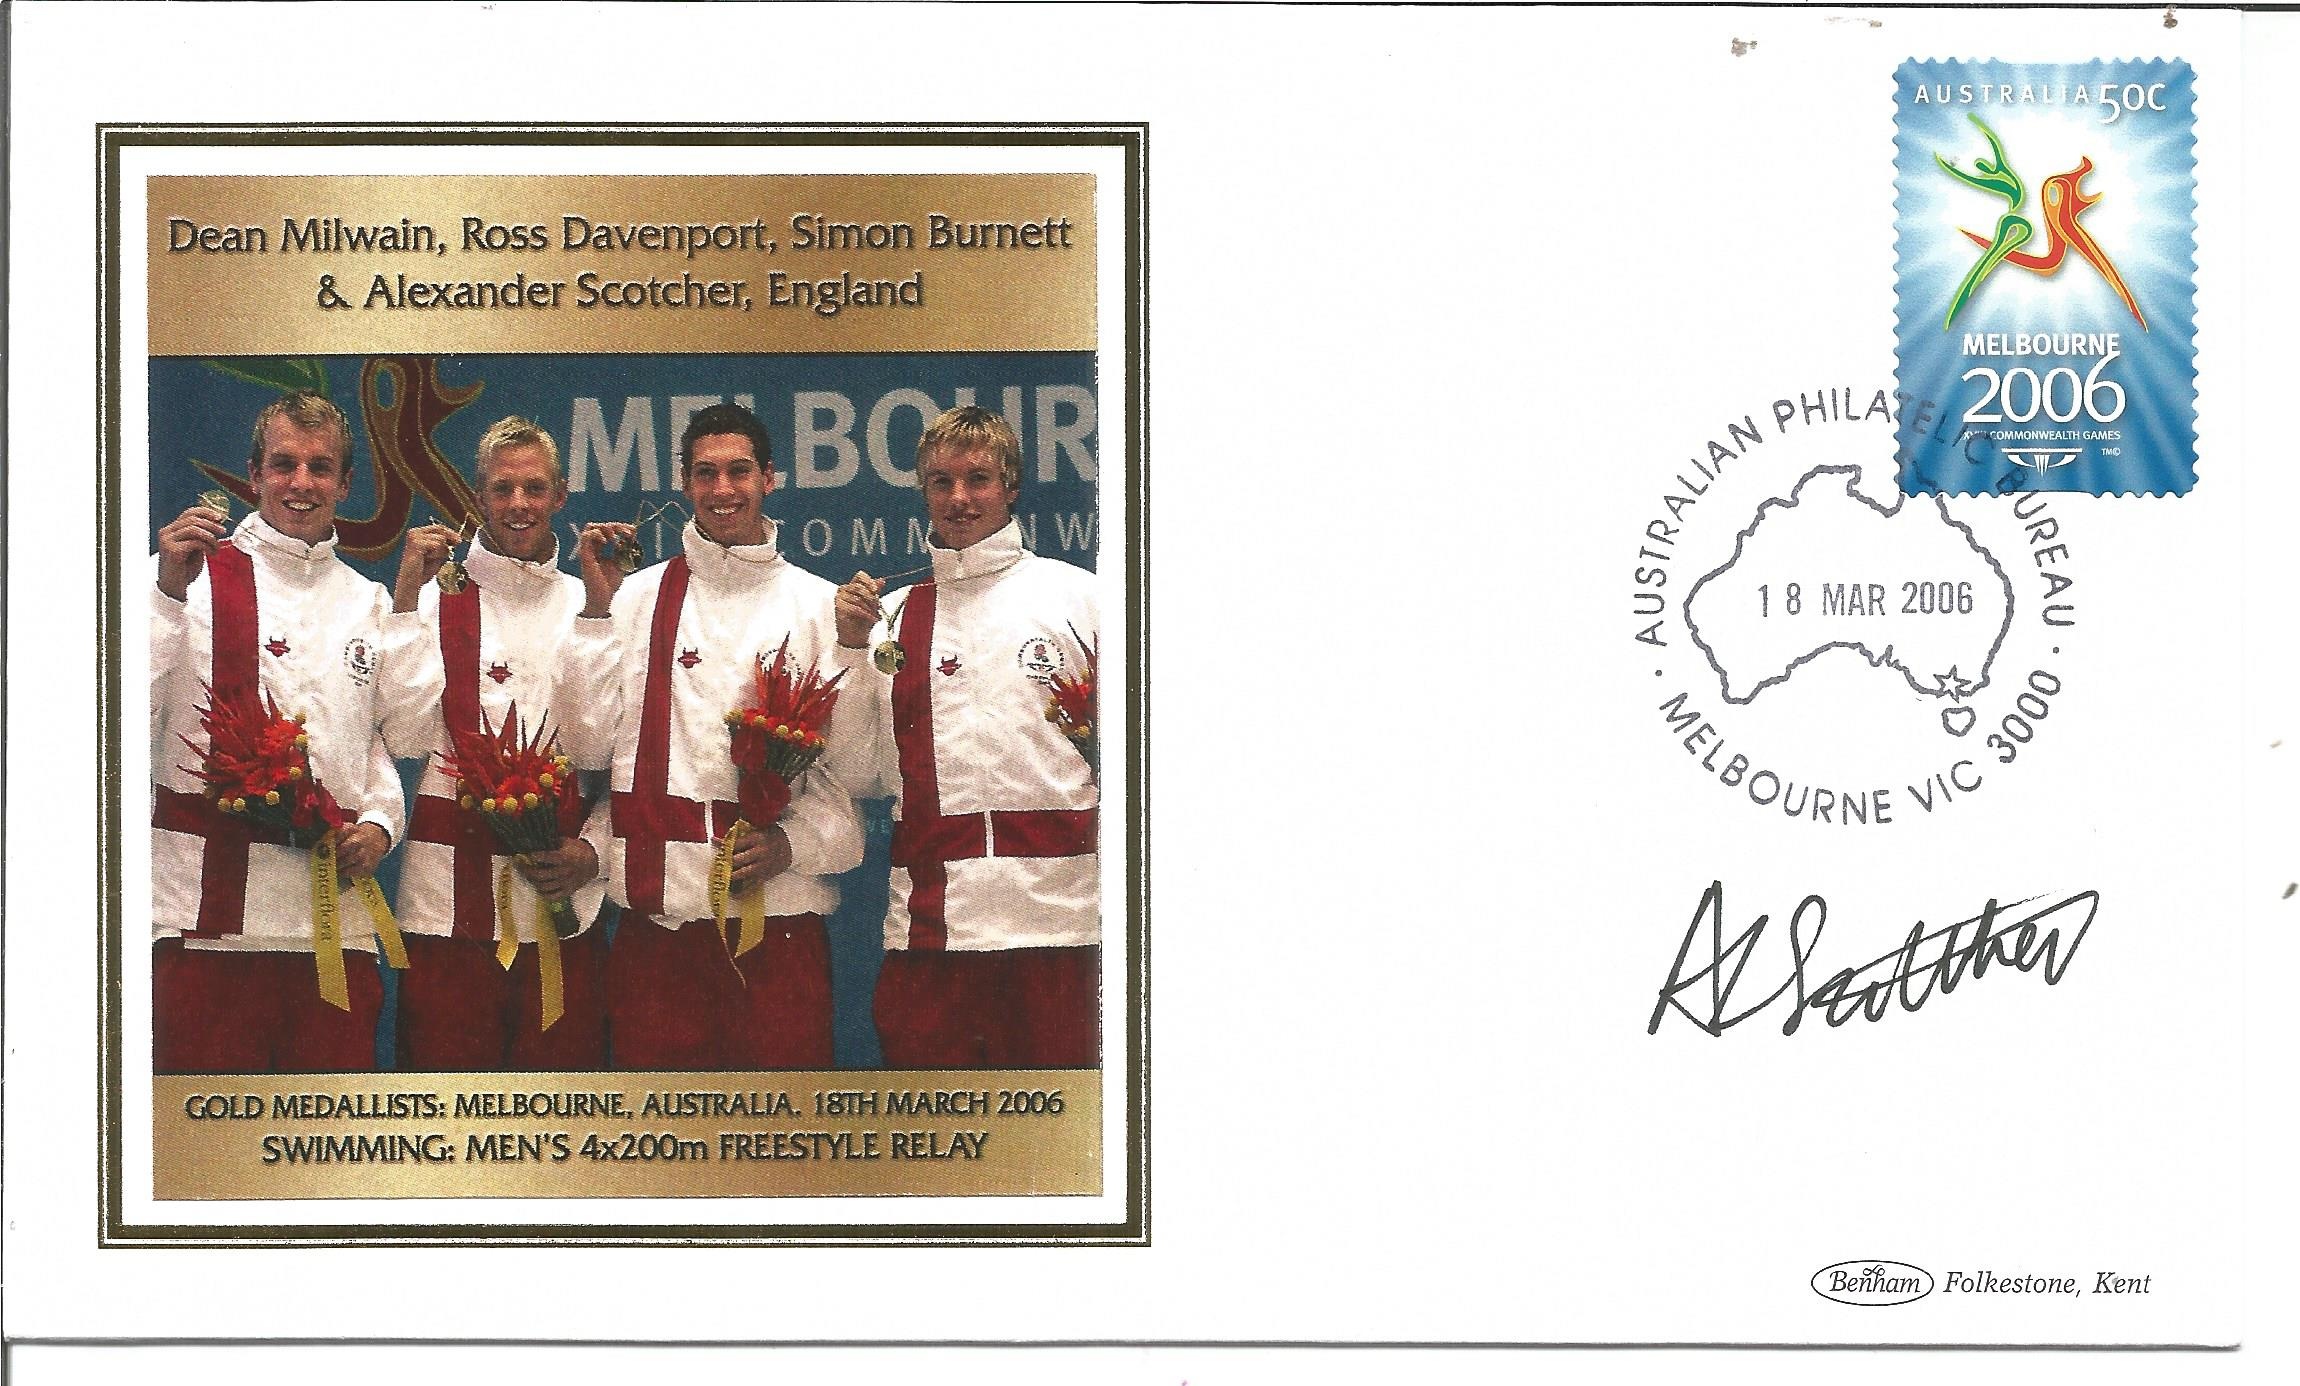 Olympic medal winner Alexander Scotcher signed Benham Melbourne Olympics silk FDC to commemorate the